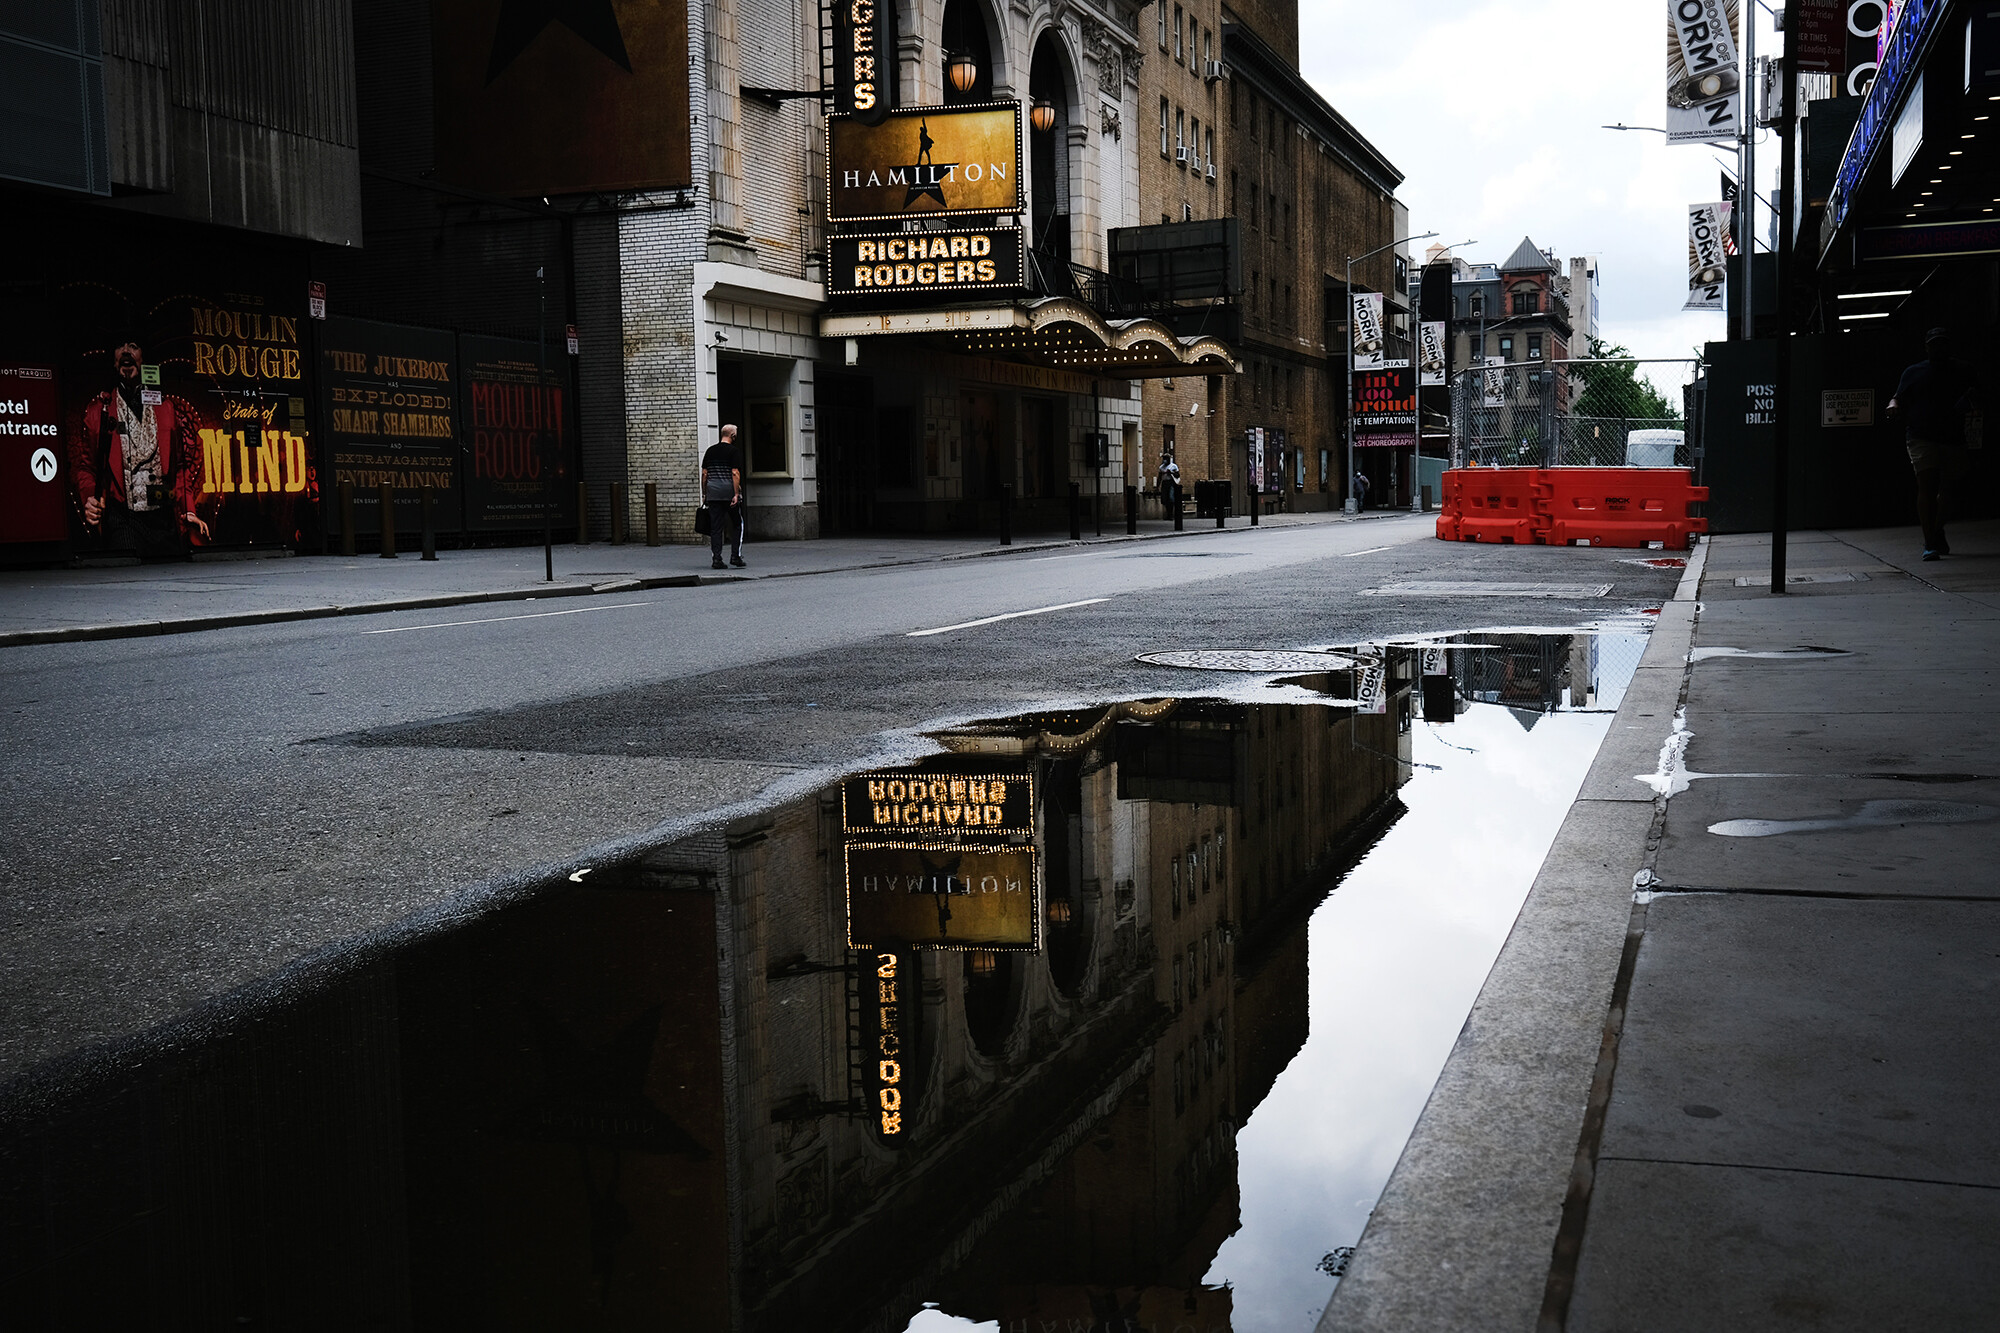 <i>Spencer Platt/Getty Images</i><br/>Broadway theaters stood closed along an empty street in the theater district on June 30